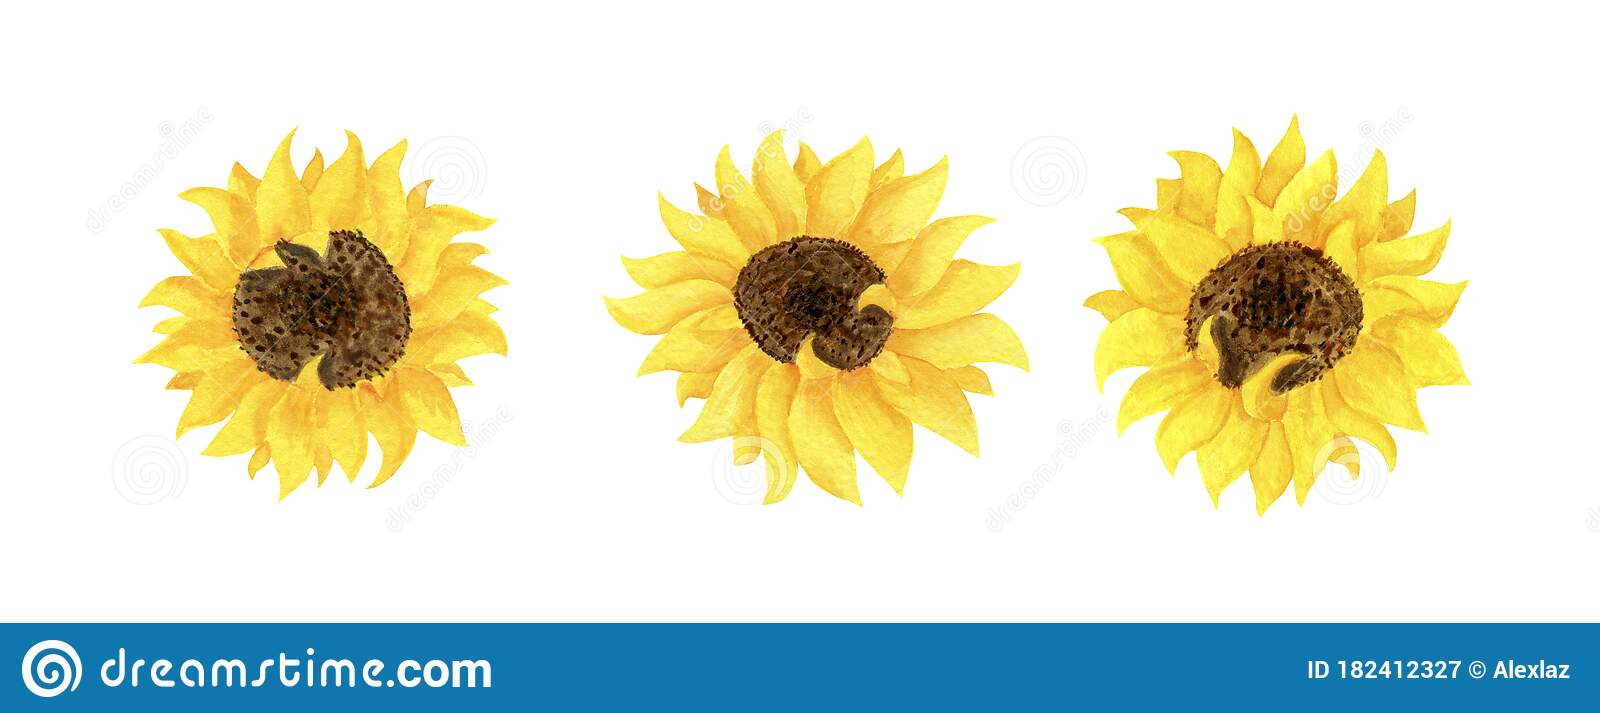 Sunflower Clipart Black And White, Transparent PNG Clipart Images Free  Download - ClipartMax